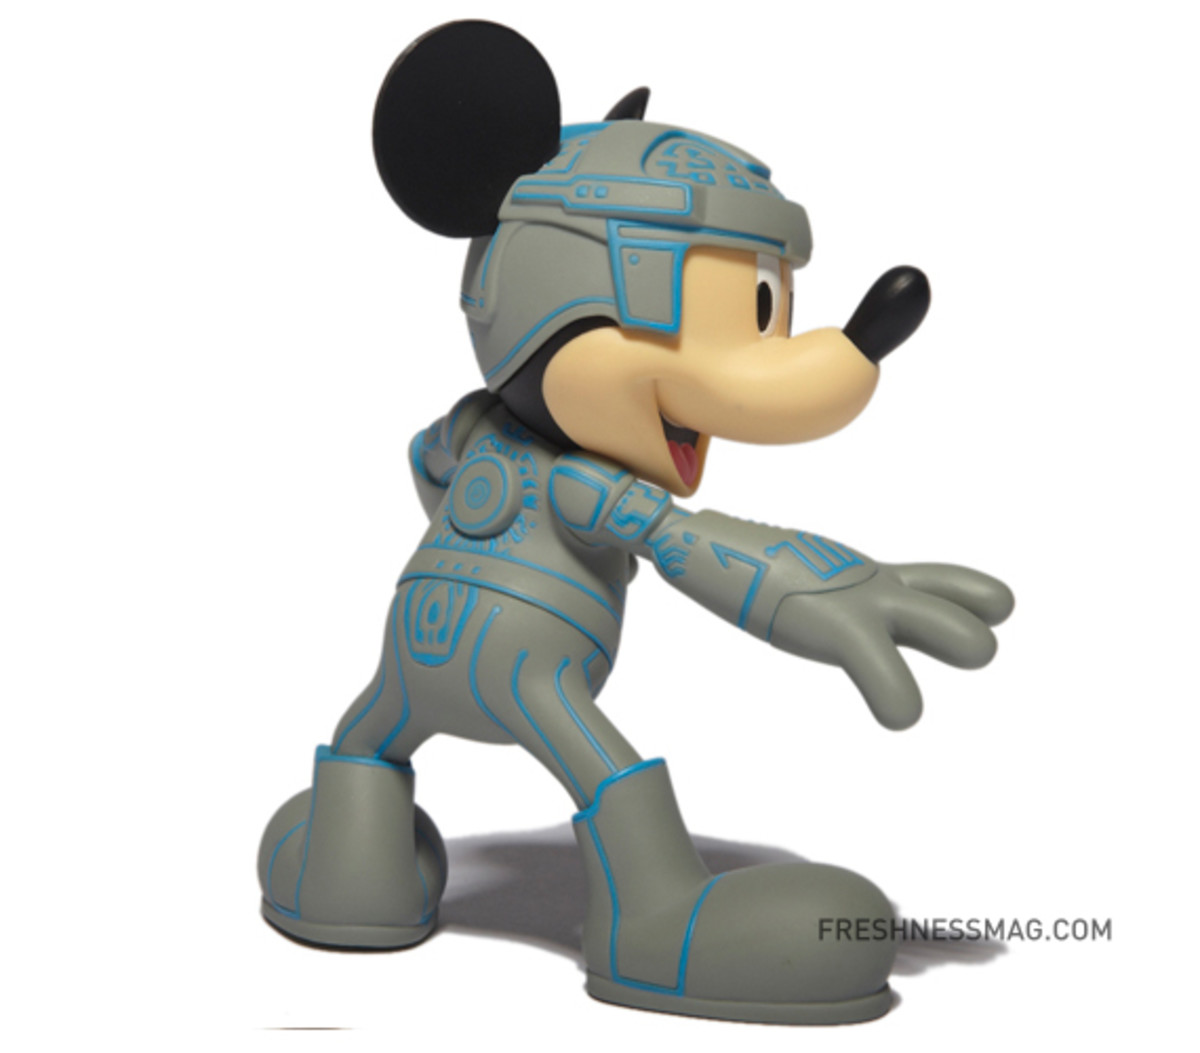 disney-medicom-toy-tron-mickey-mouse-vcd-02